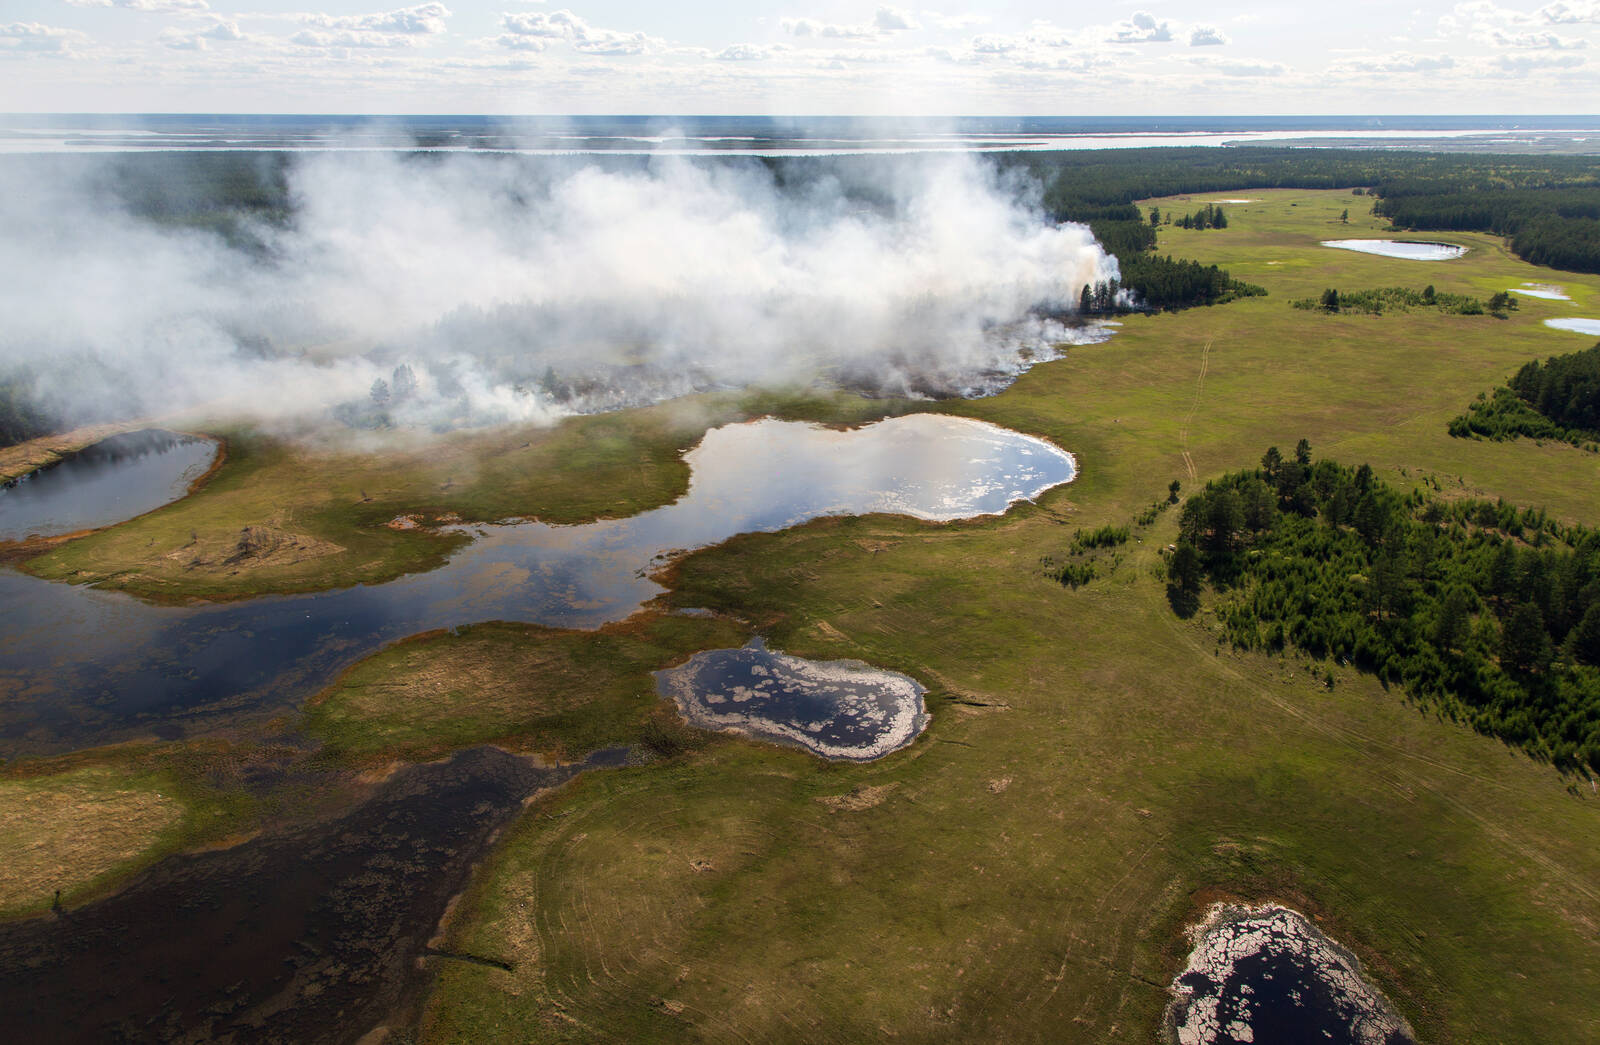 A view of a forest fire in central Yakutia from a helicopter. Credit: Yevgeny SofroneyevTASS via Getty Images